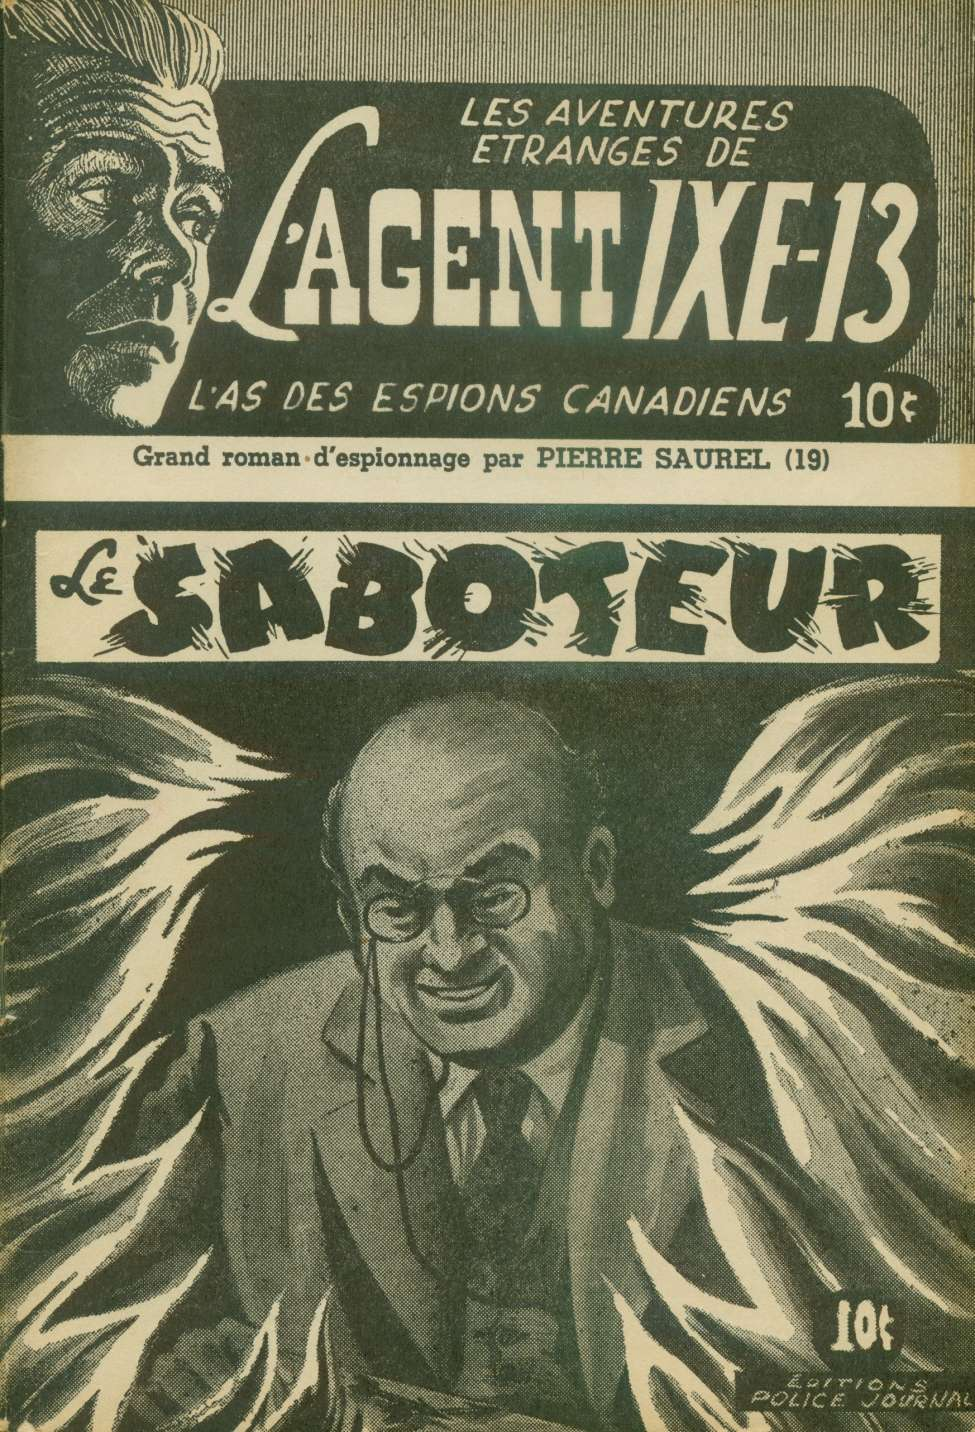 Comic Book Cover For L'Agent IXE-13 v2 019 - Le saboteur